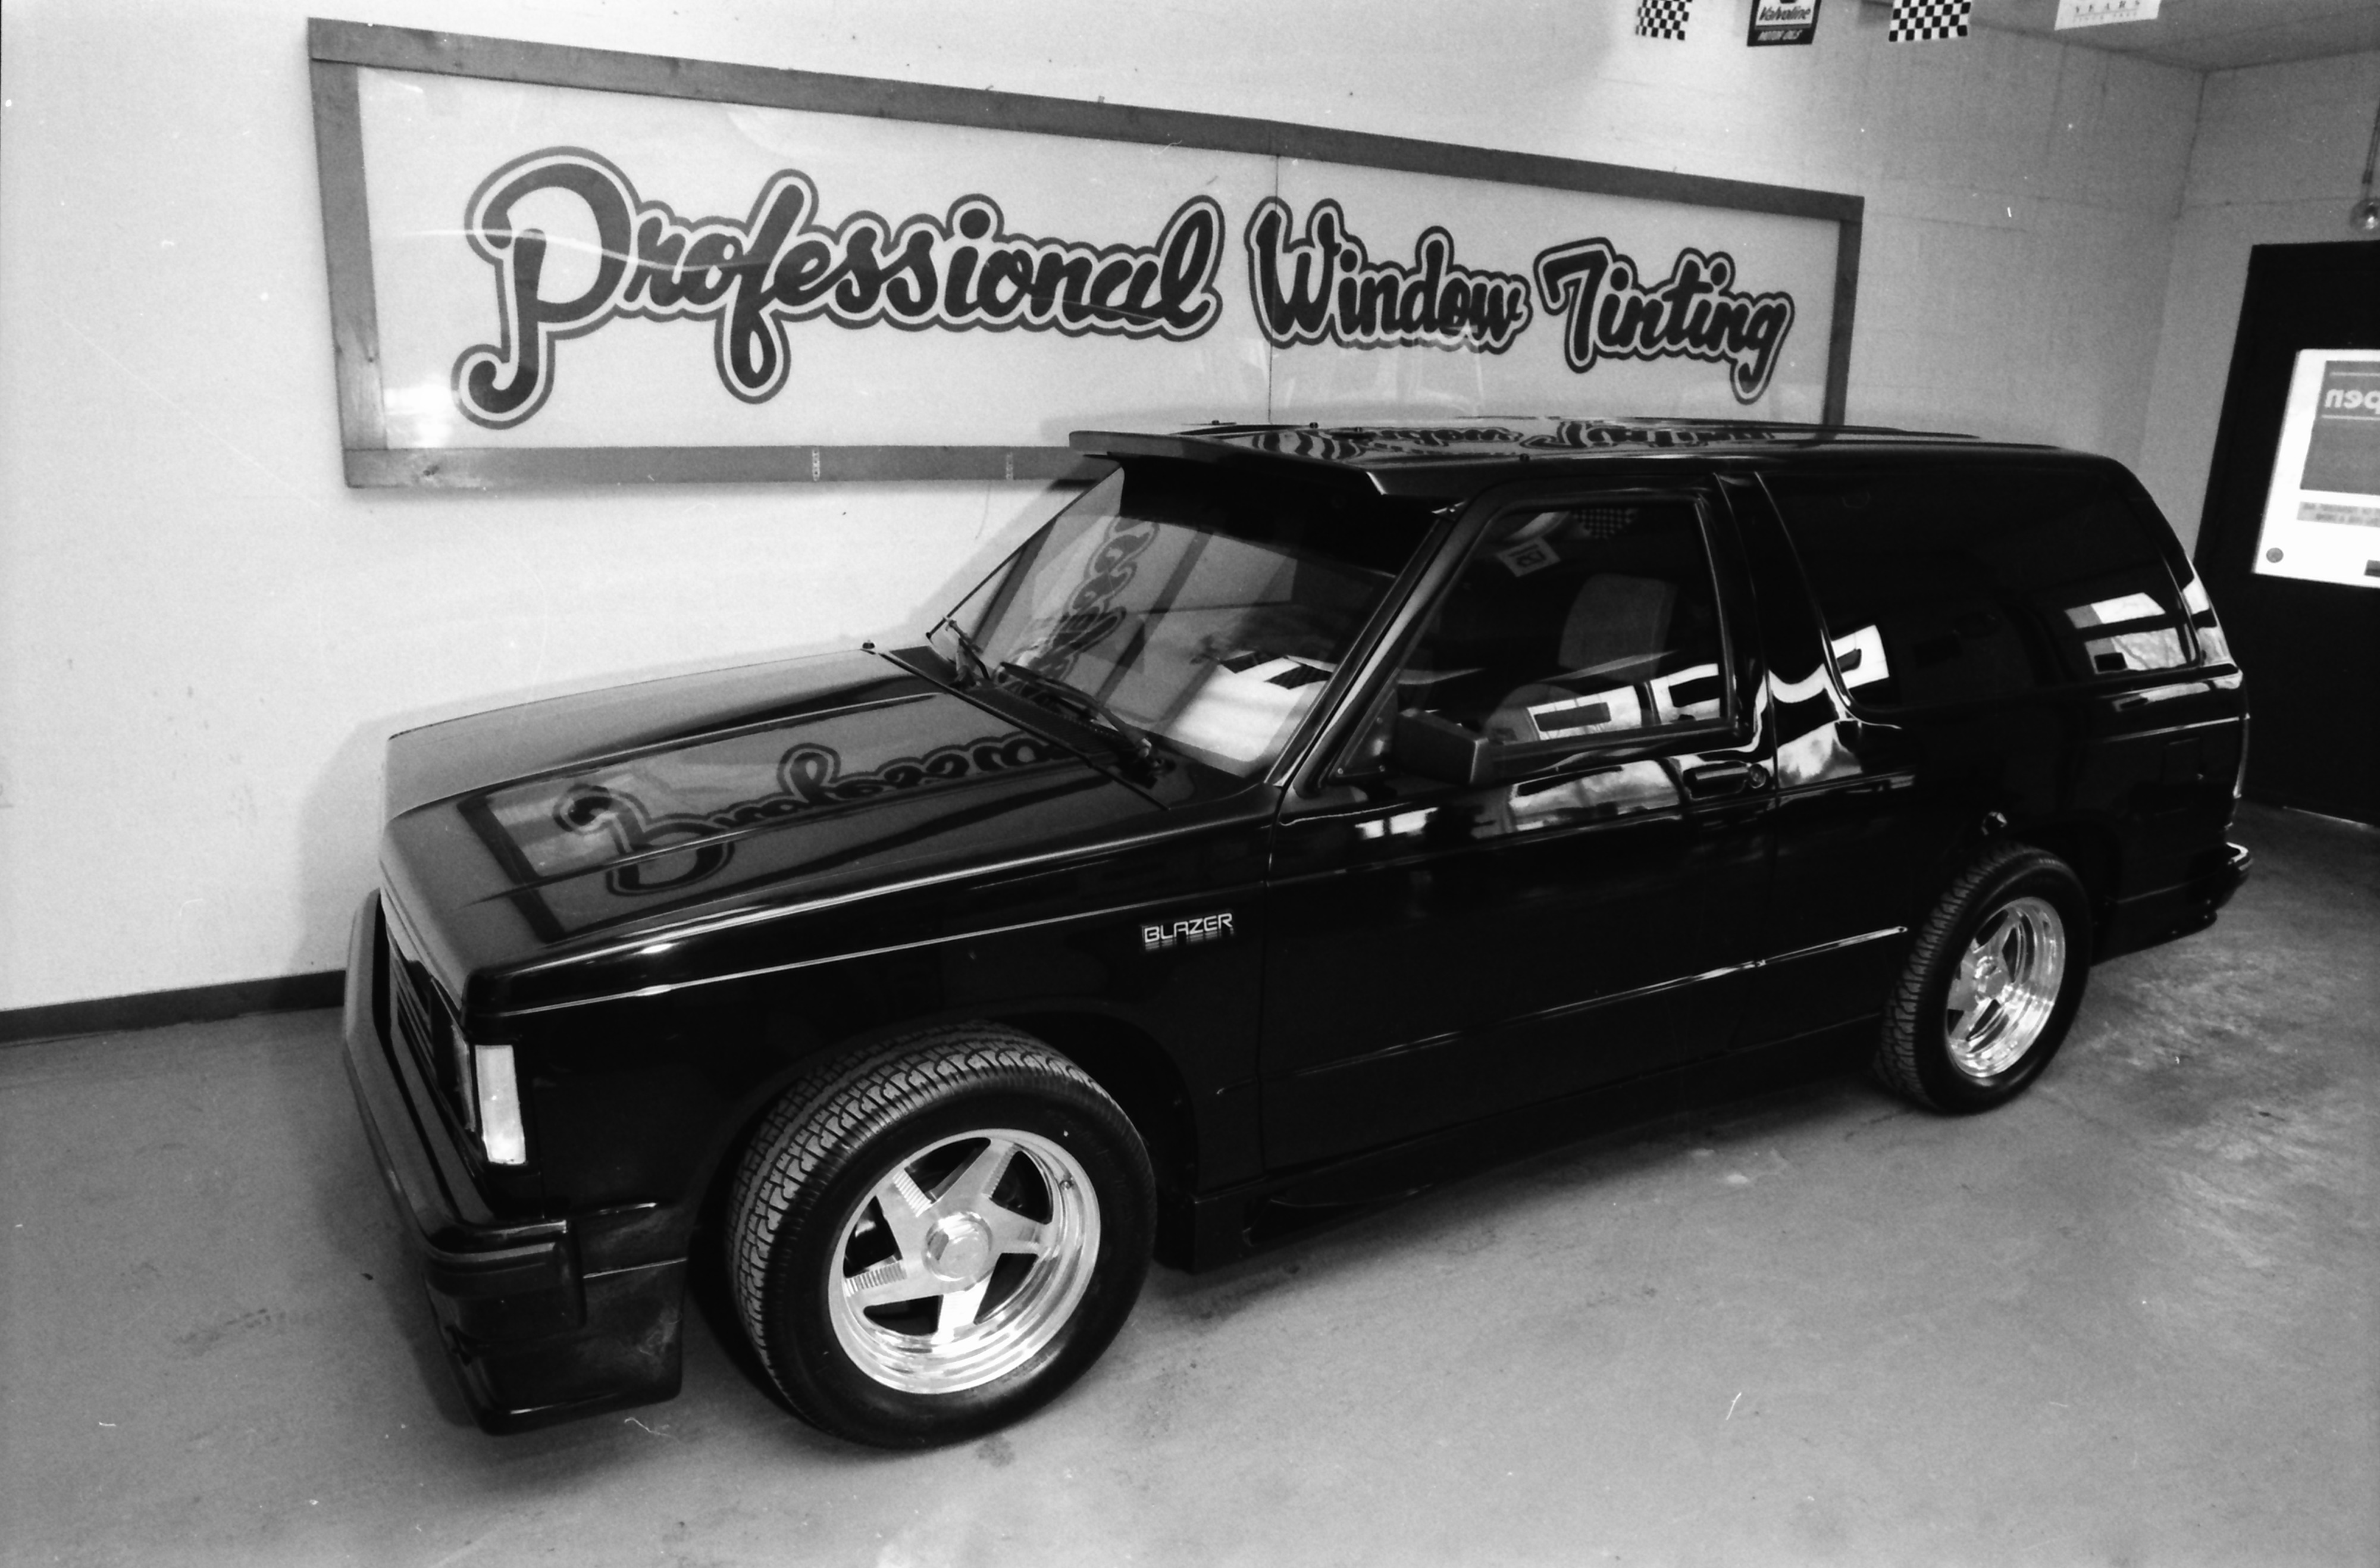 Professional Window Tinting Advertisement, February 1992 image